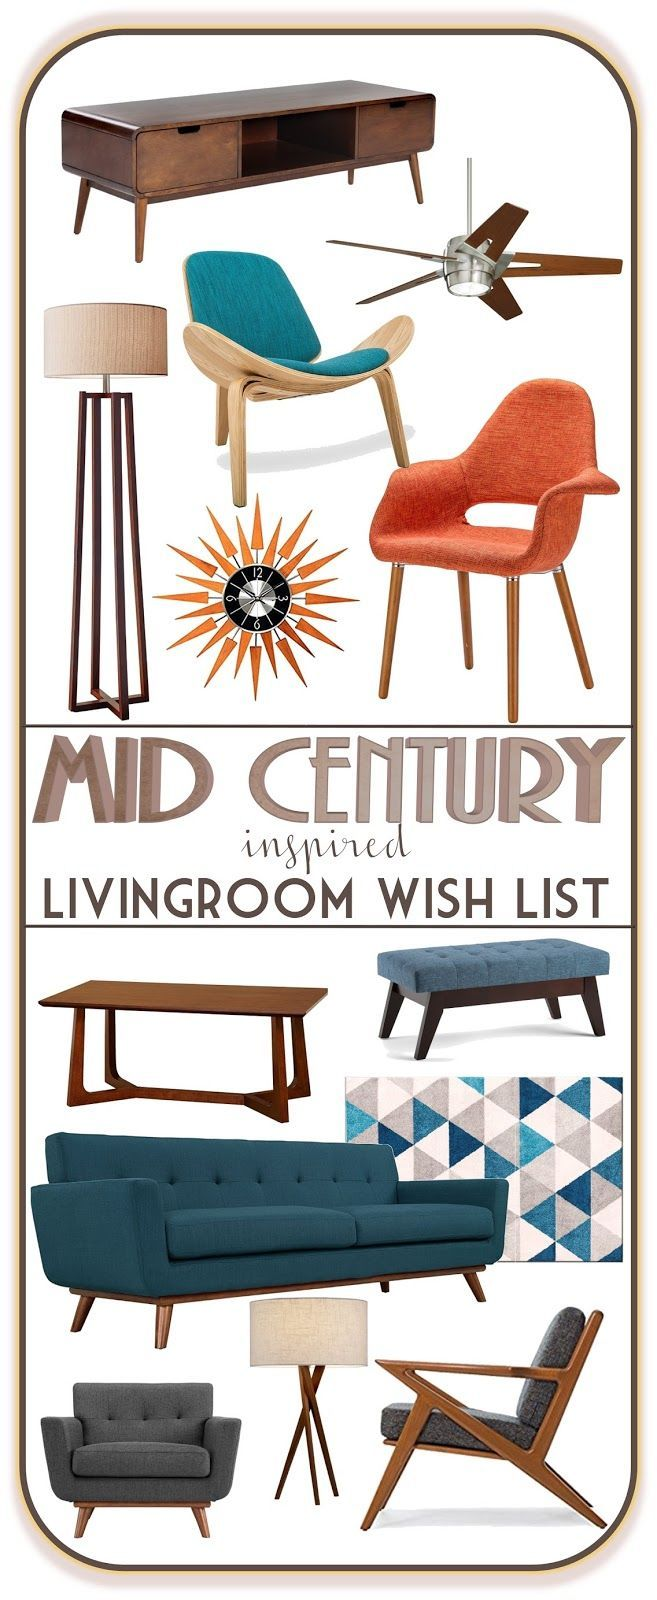 Cabinet brings a mid century charm to the dining room or living room - Best 25 Mid Century Living Room Ideas On Pinterest Cabinet Modern Entryway And Credenza